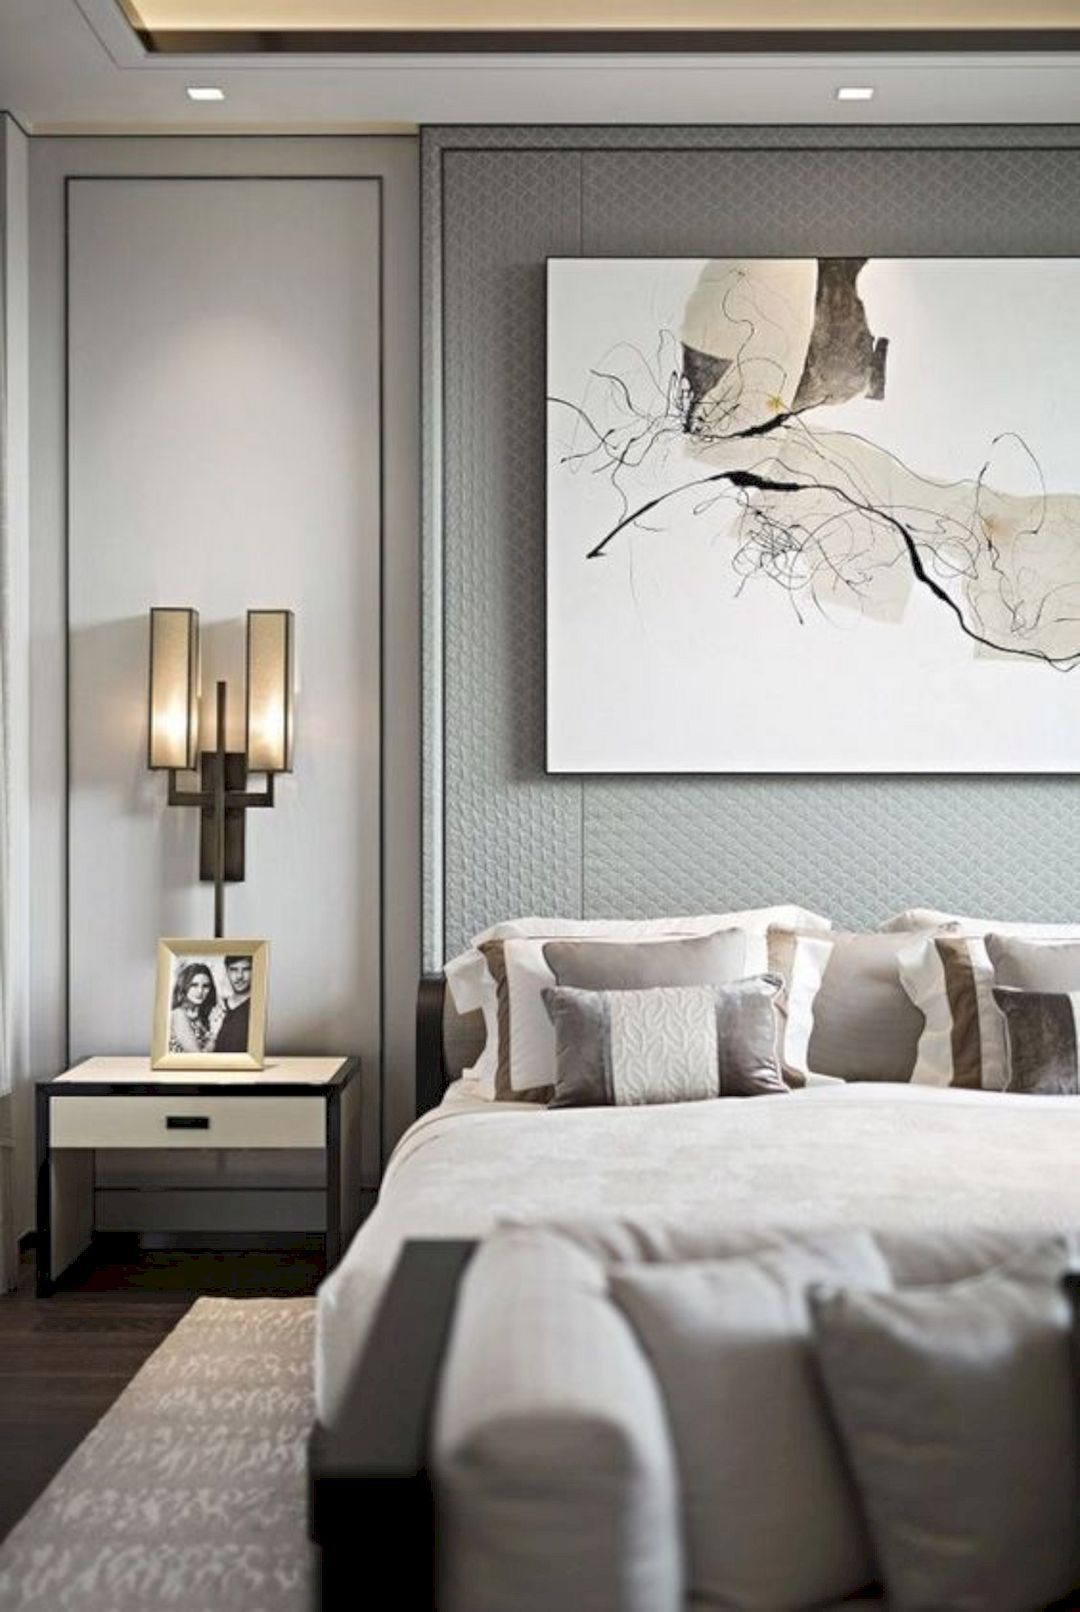 the best bedroom design ideas for you to apply in your home decor modern also rh pinterest